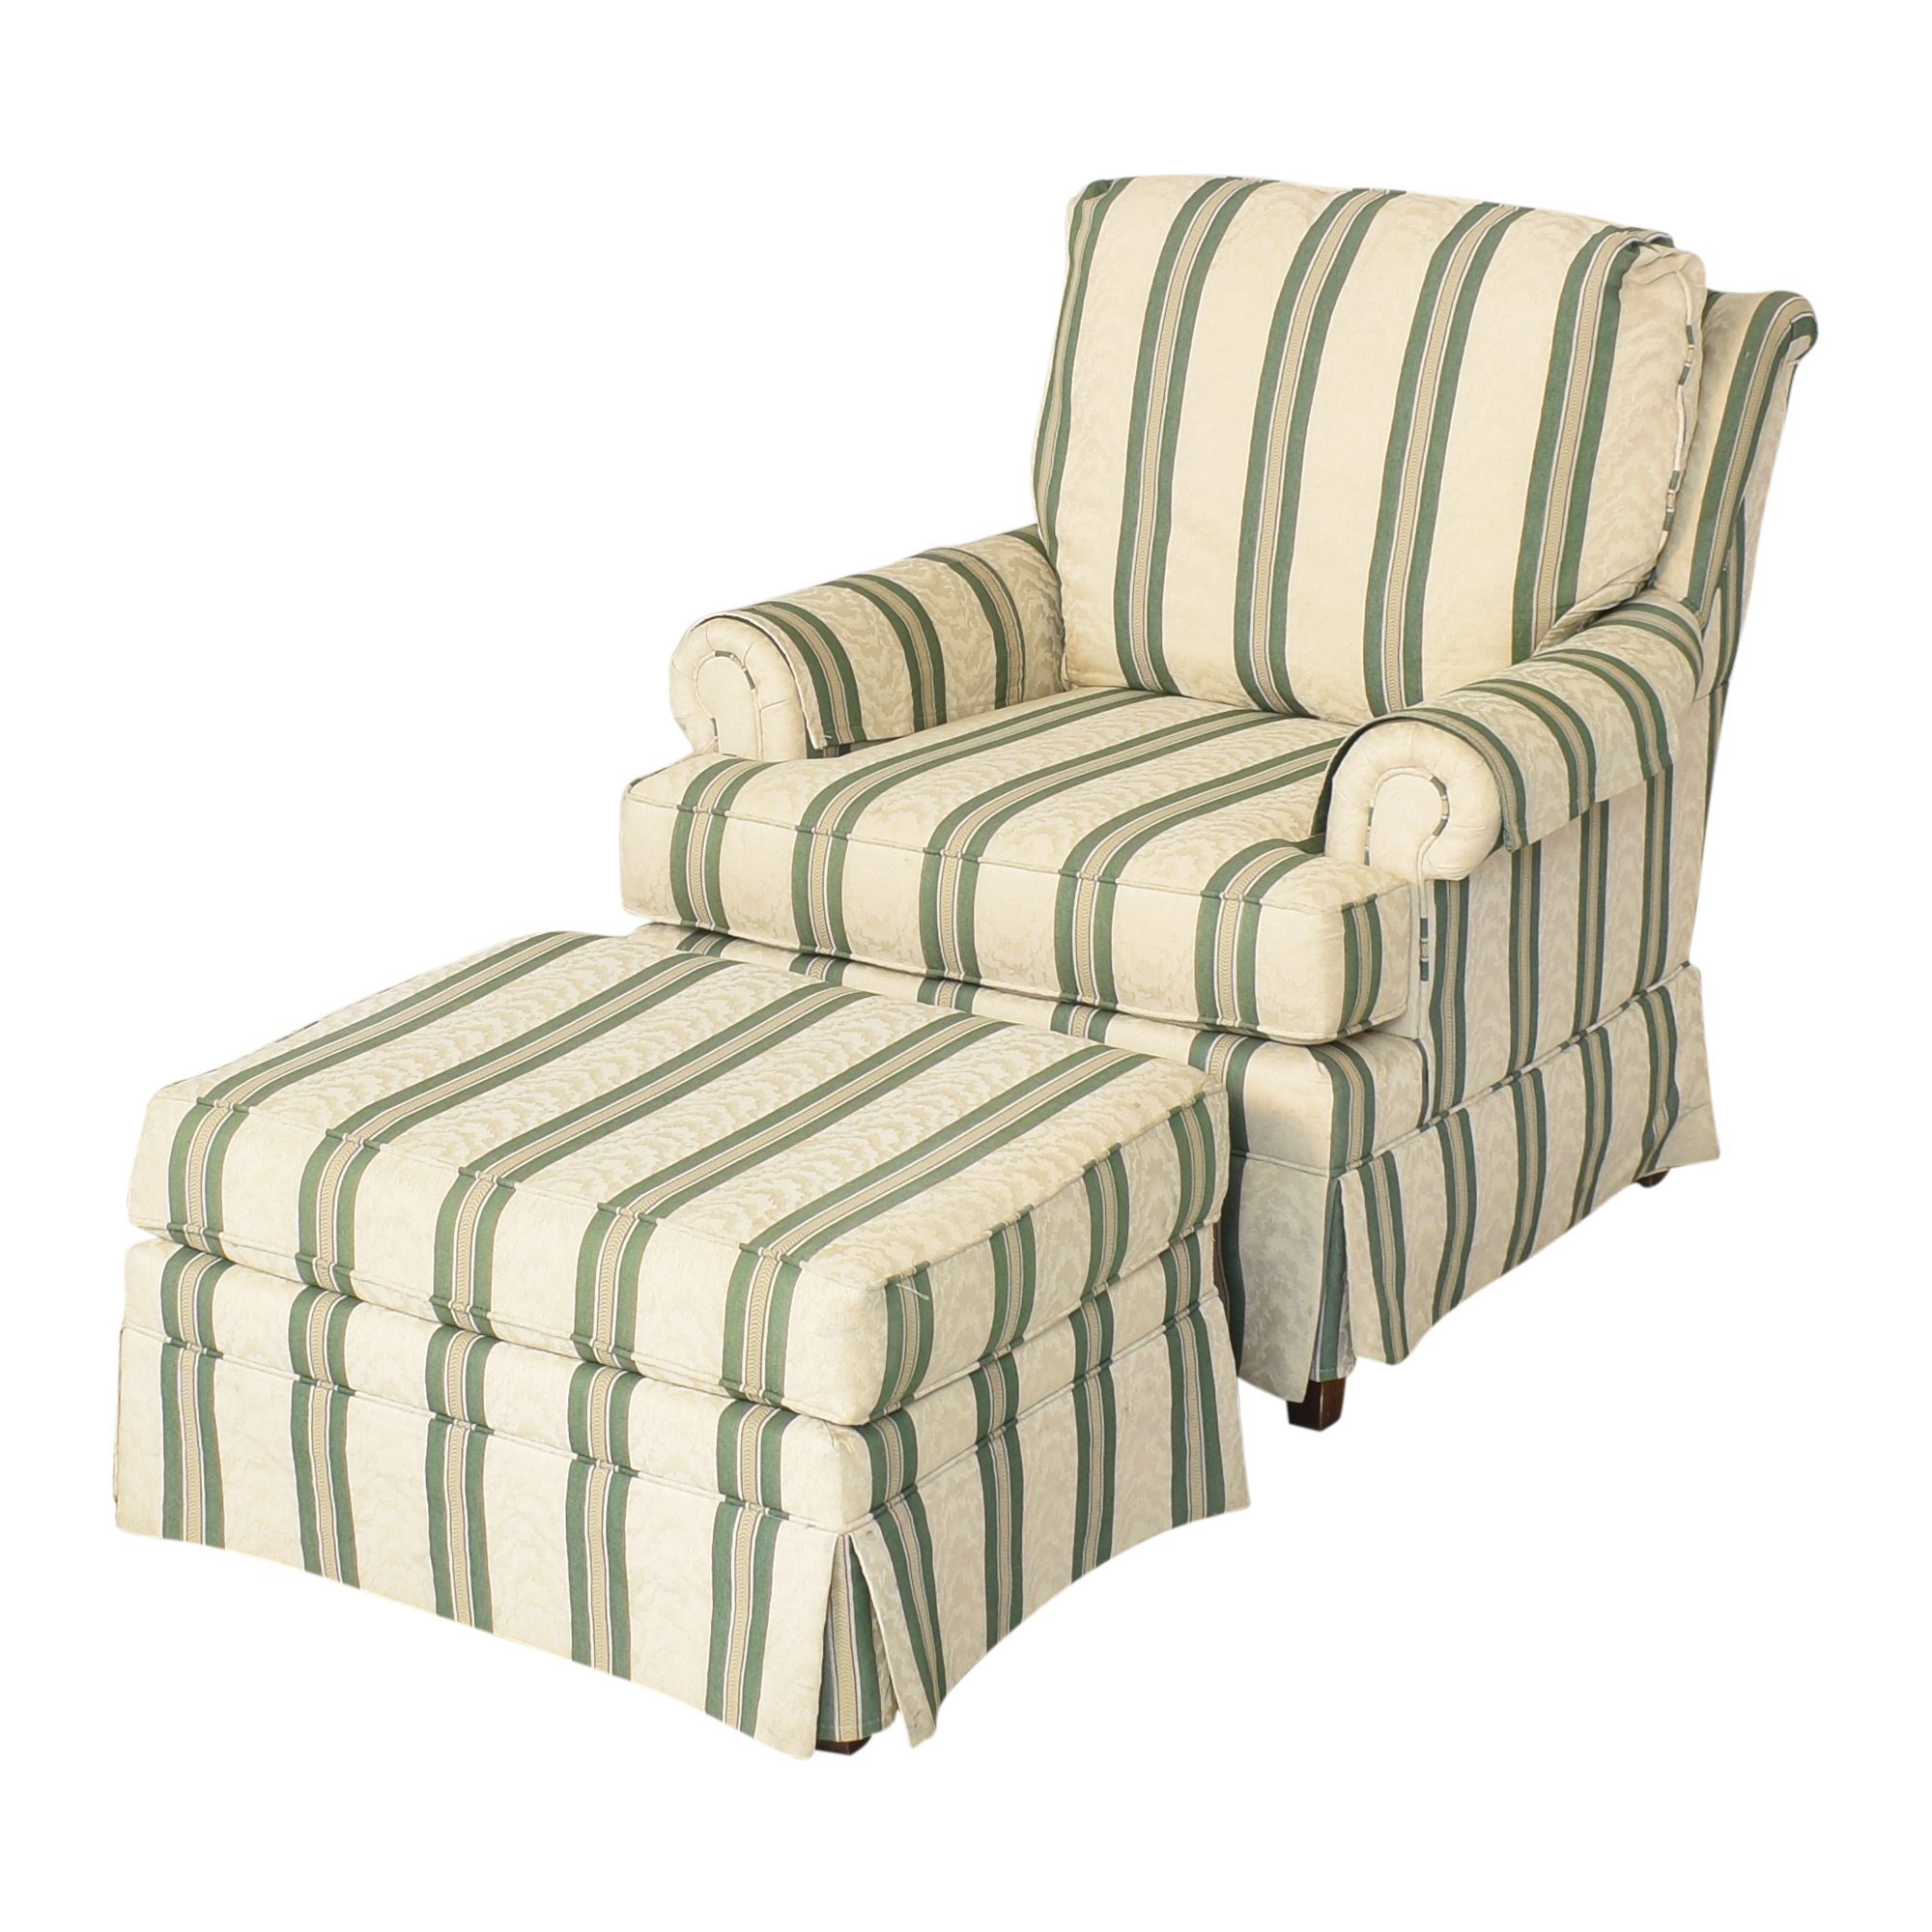 Pembrook Chair Pembrook Chair Upholstered Accent Chair and Ottoman nyc